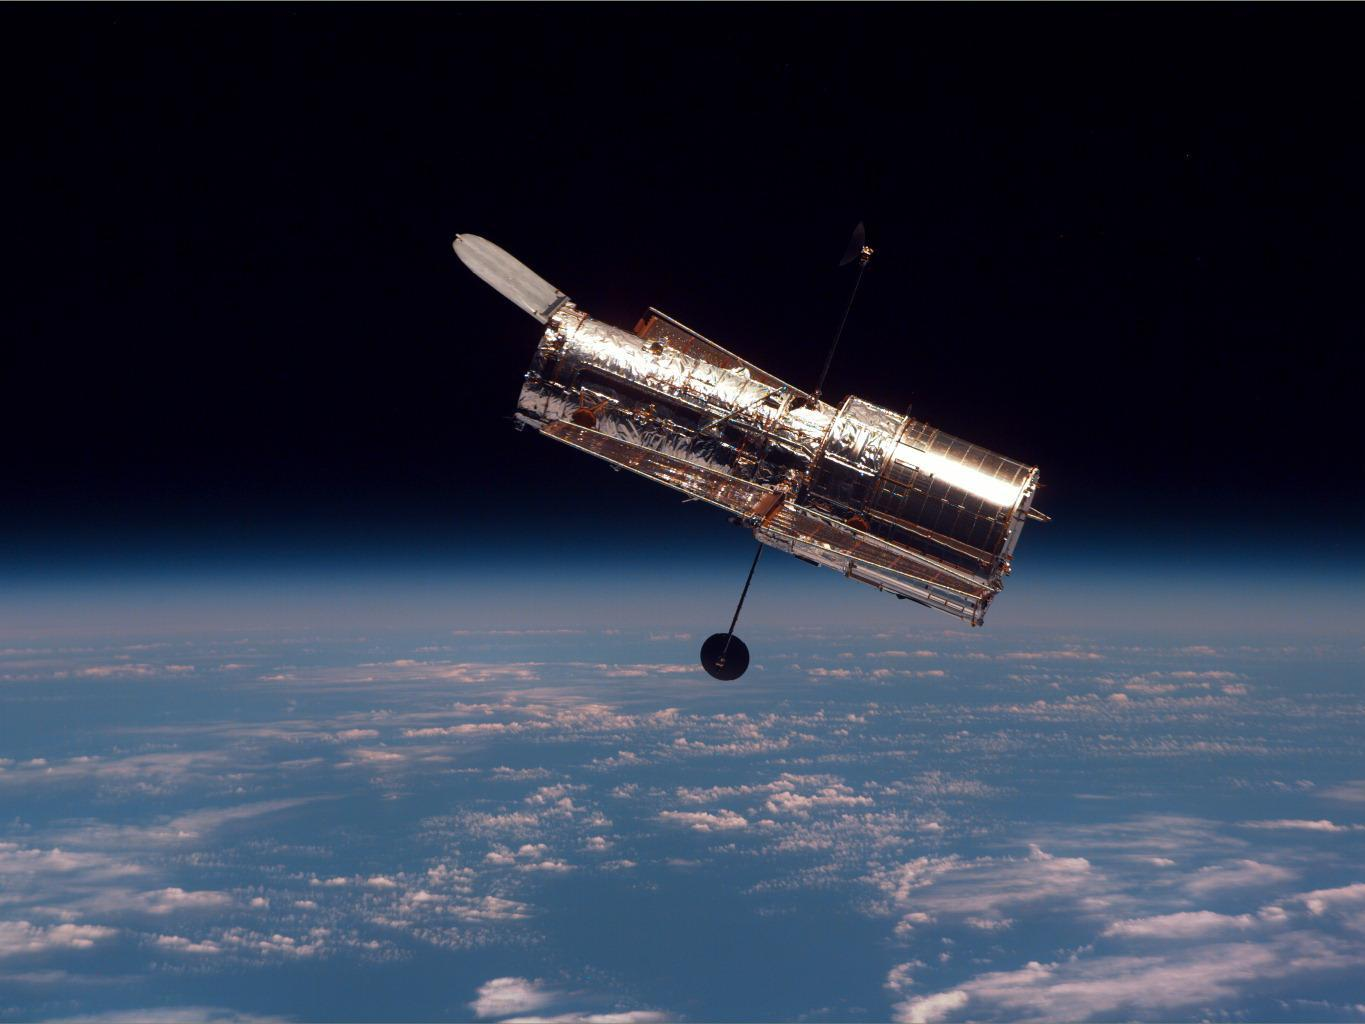 30 years of Hubble: Three decades of space wonder began with an underwhelming image that proved extremely important - The Independent